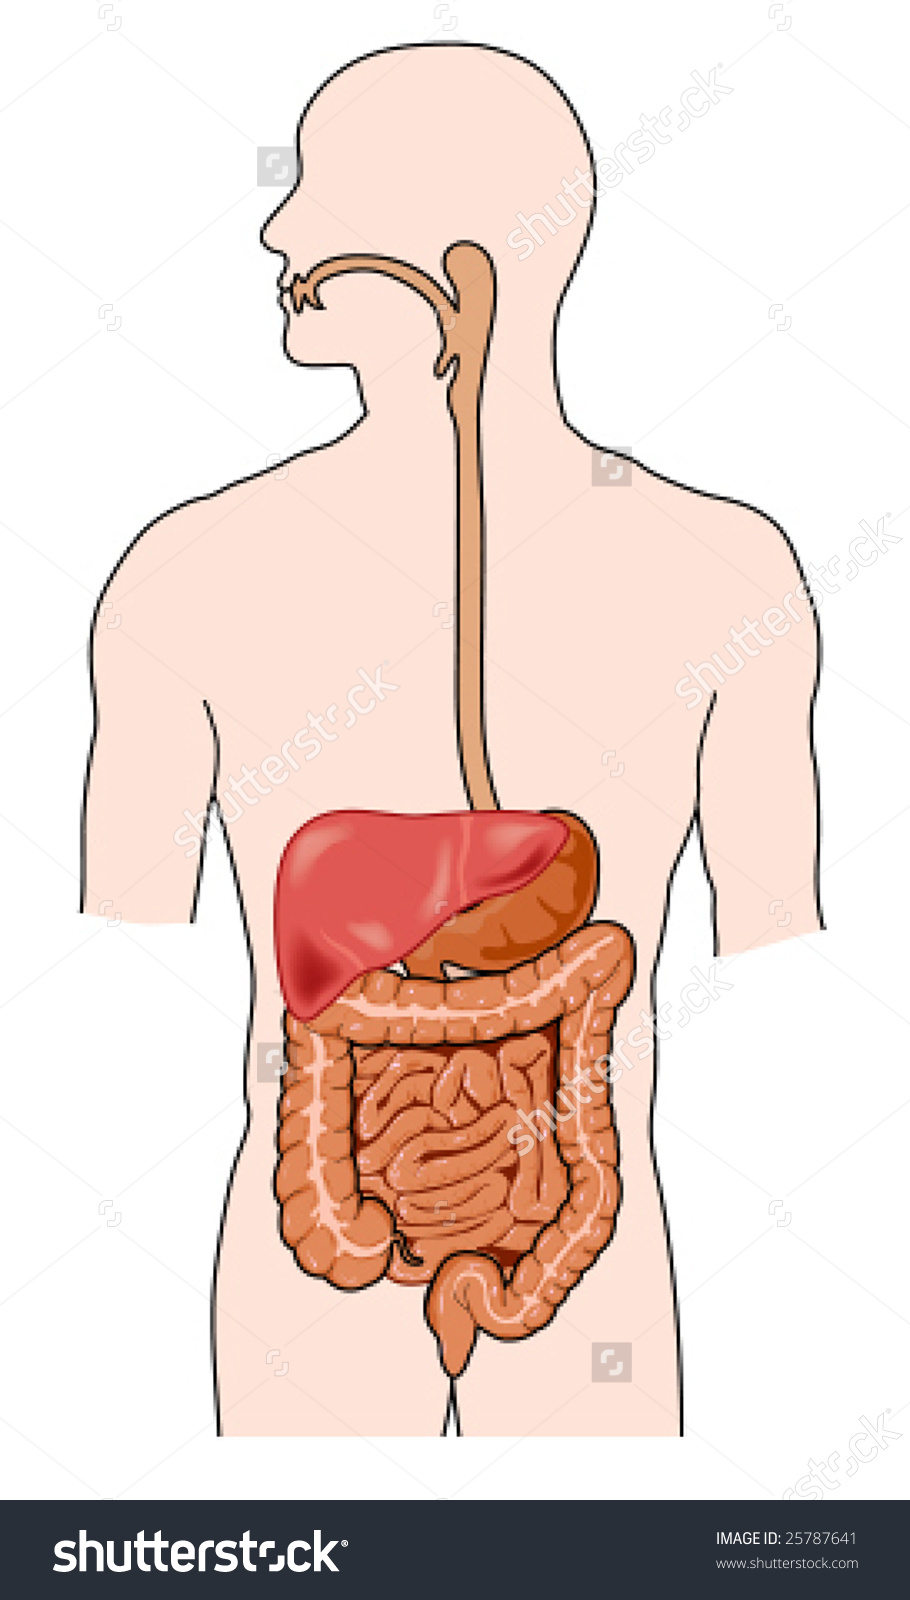 Human Digestive System Stock Vector 25787641.